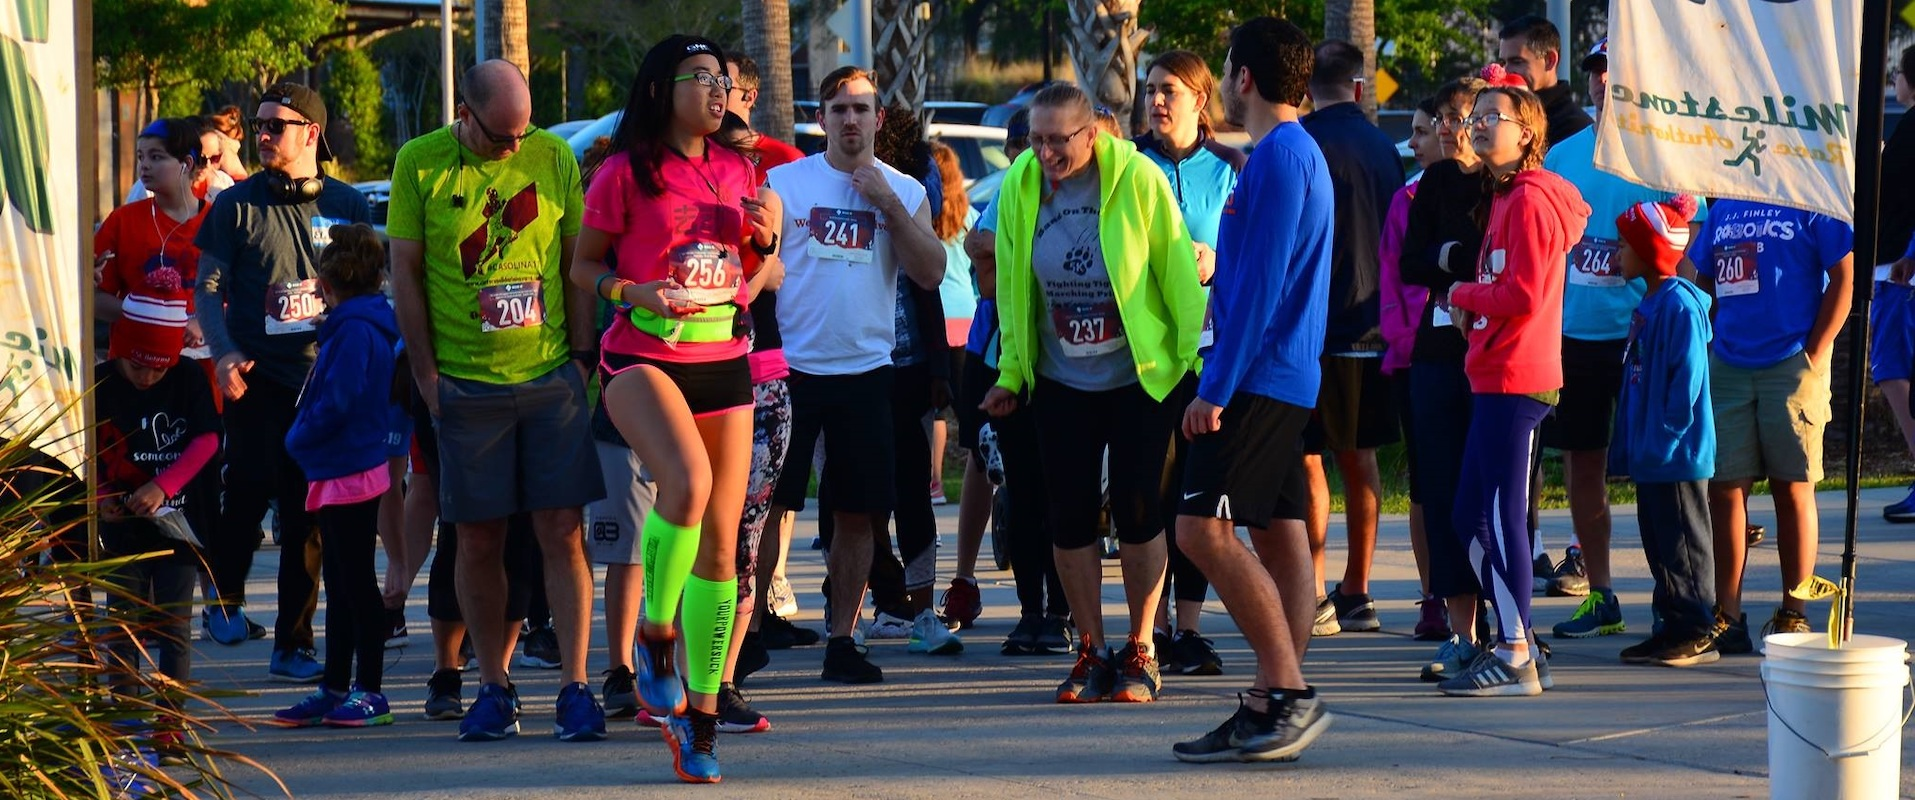 CHECK OUT WHAT WALKS & RUN/WALKS ARE HAPPENING IN YOUR AREA AND JOIN THE FUN TODAY!